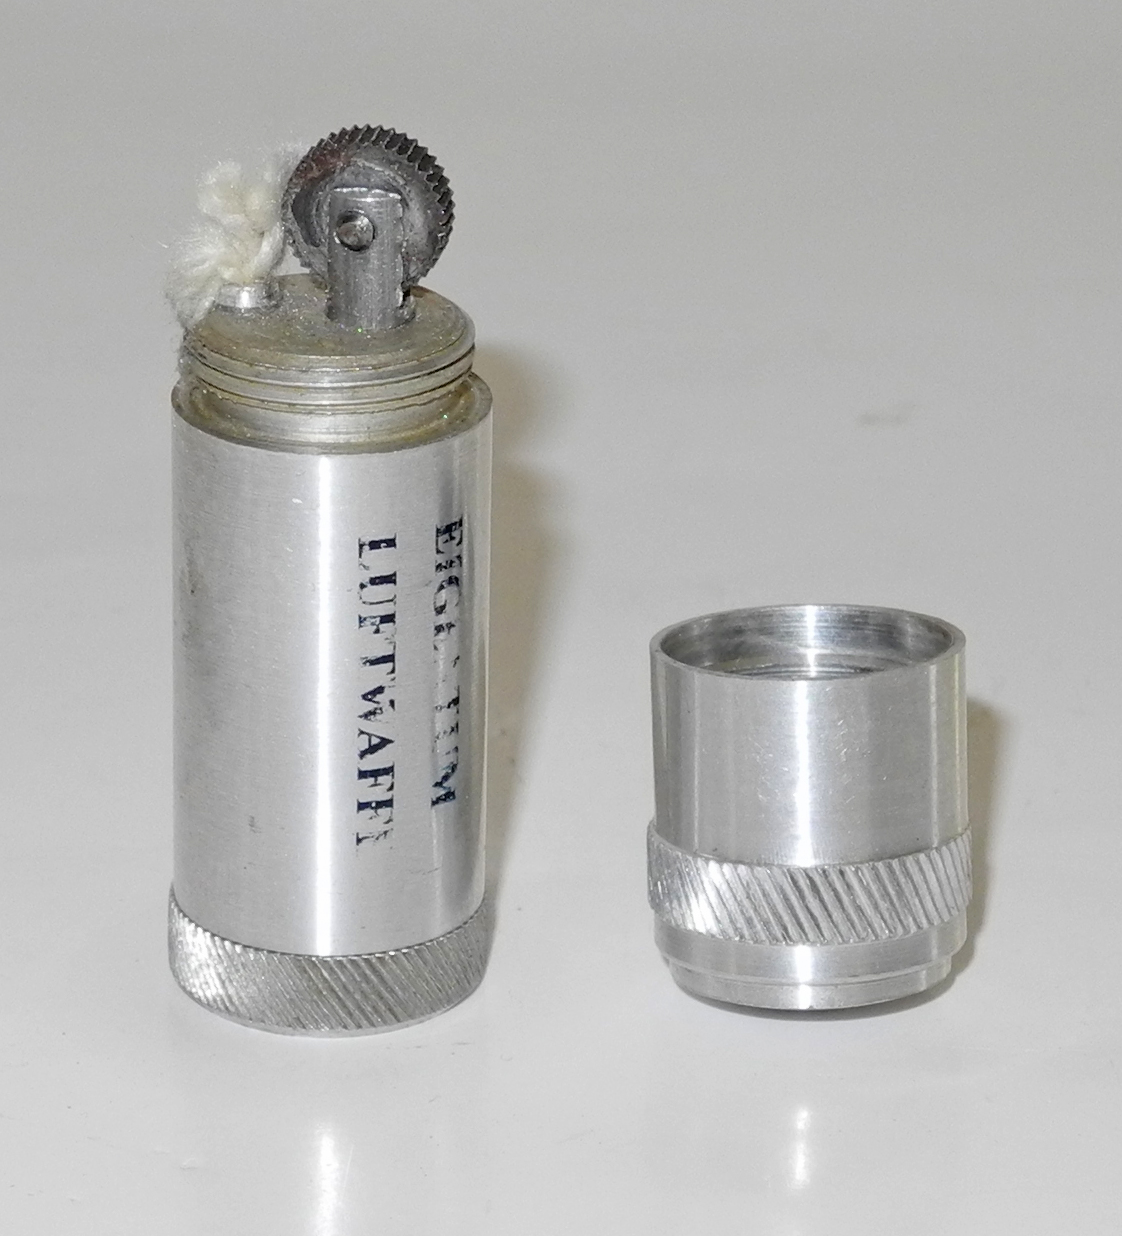 Luftwaffe cigarette lighter